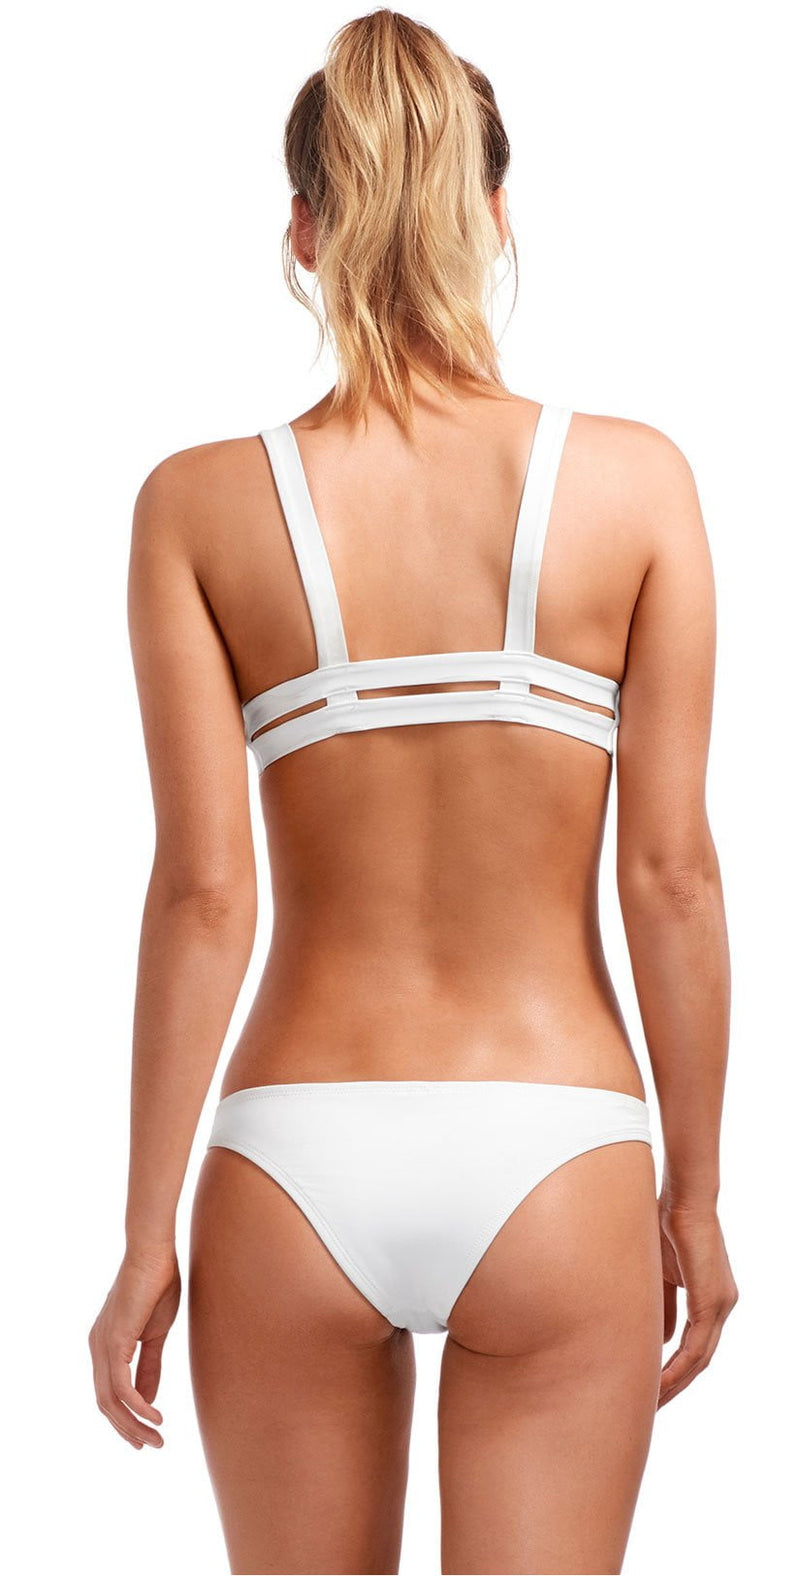 Vitamin A EcoLux Neutra Hipster Bottom in White 42B-ECW: